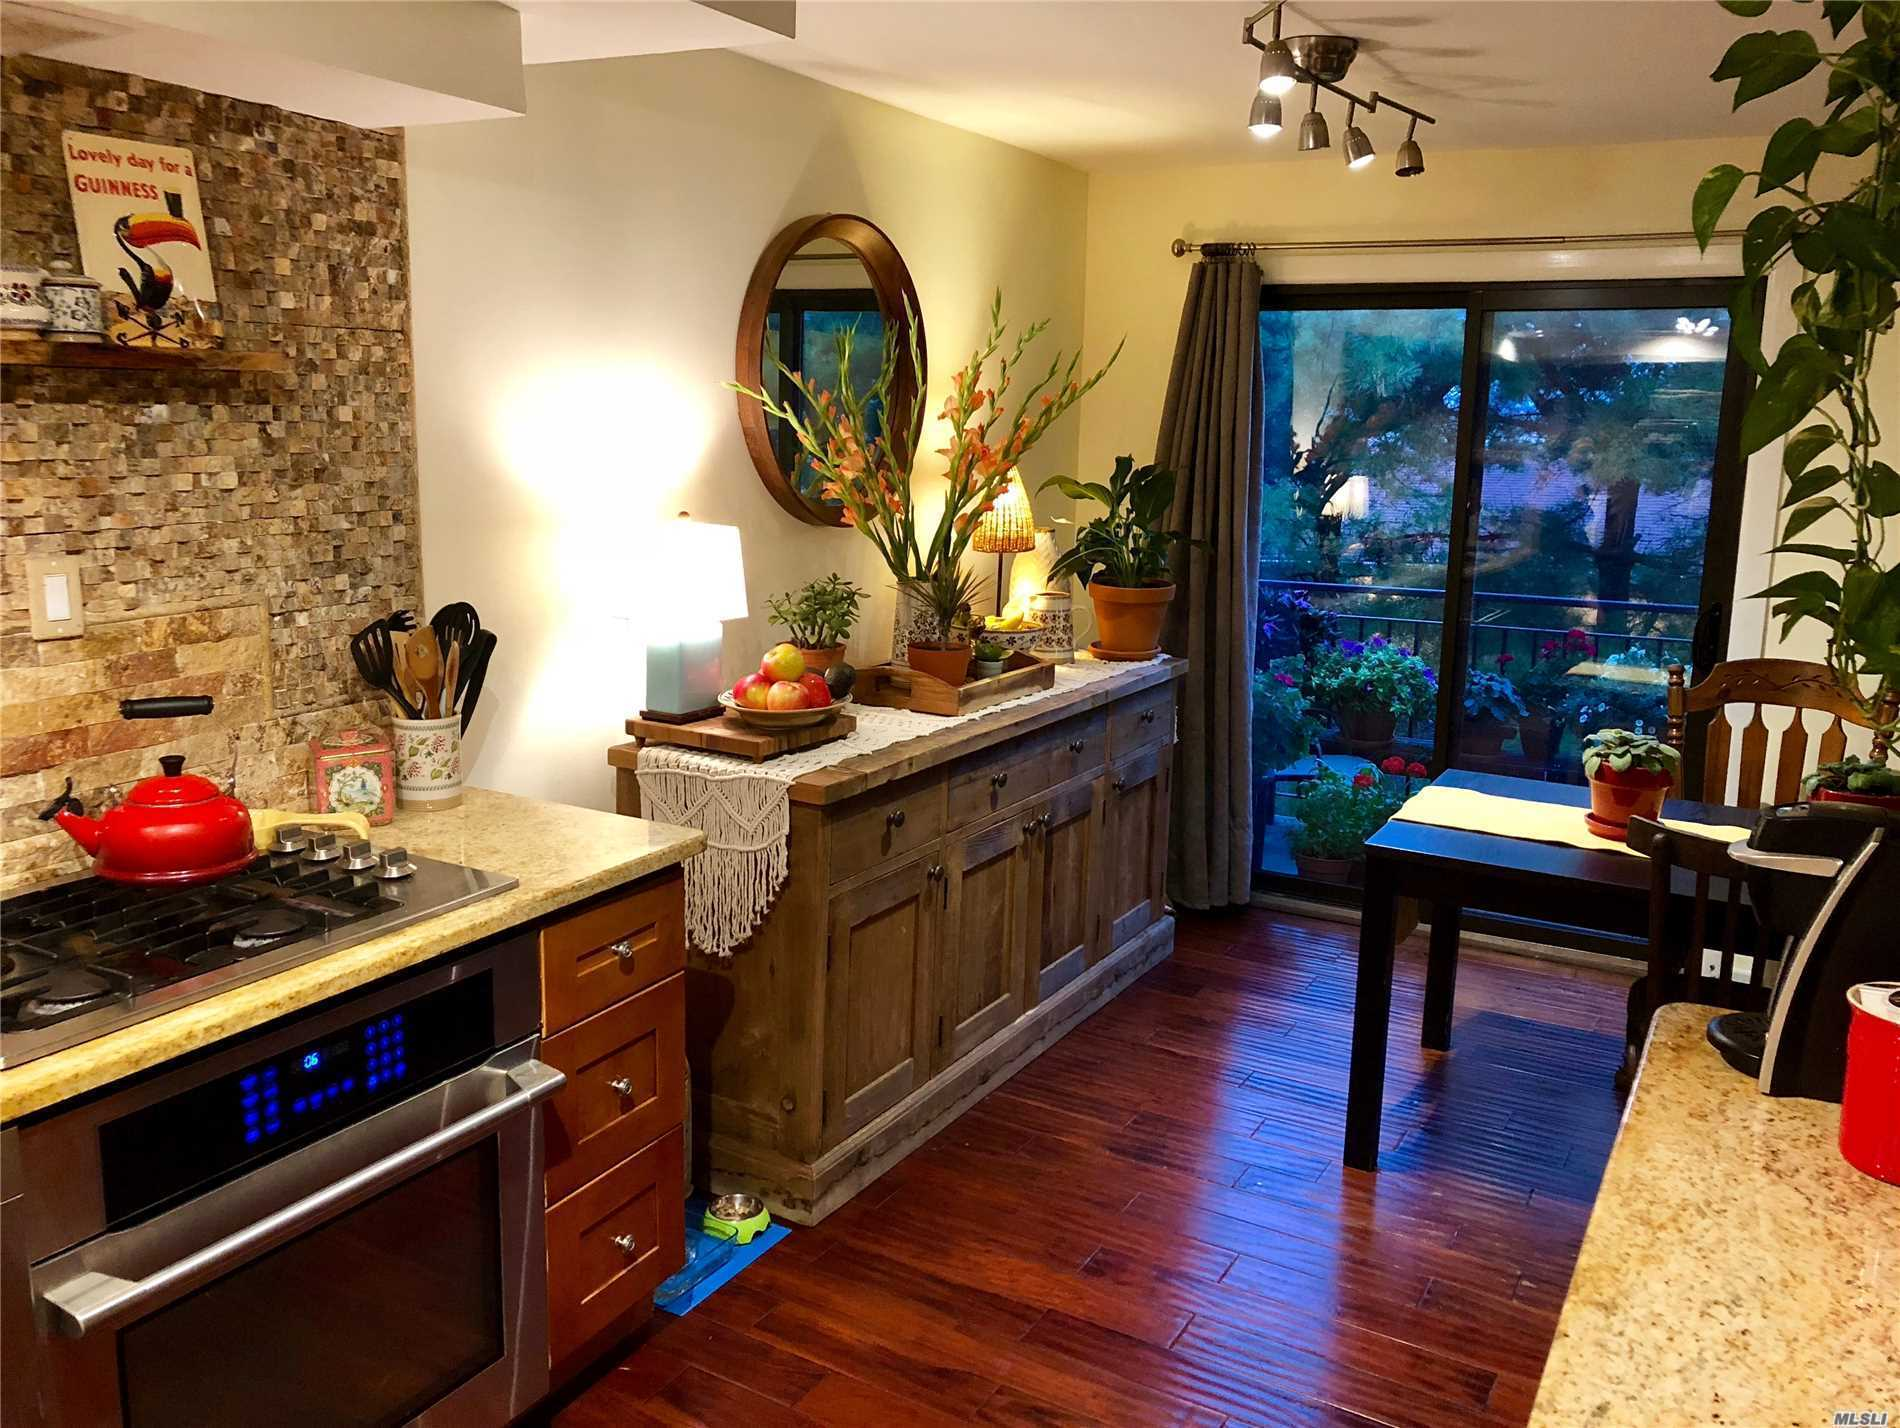 Bright And Sunny Renovated Condo Duplex With Terrace In The Beautiful Gated Community Of Beechhurst Shores. Three Bedroom, Two Bathrooms, Living Room, Formal Dining Room, Kitchen, Hardwood Floors. Pet Friendly. One Car Space. Special Assessment Of $ 175 Per Month For Complex Capital Improvements: Repaving And Pavers.